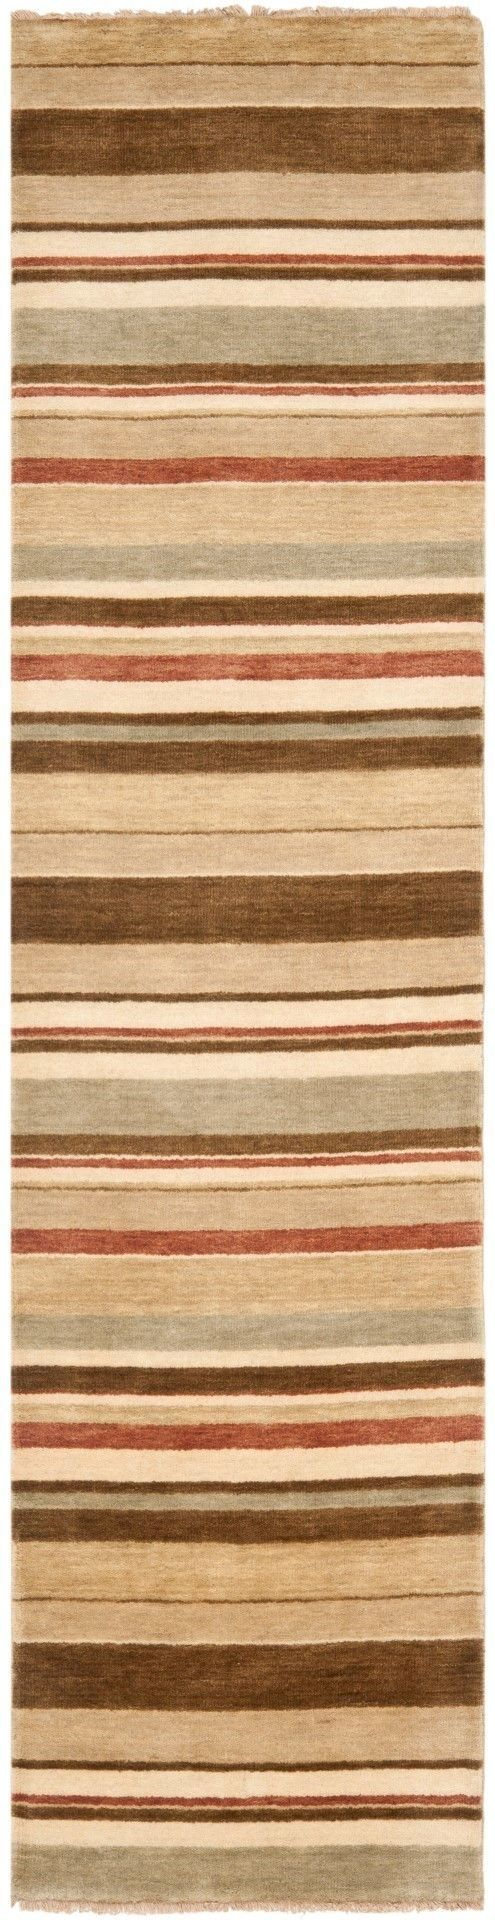 Tibetan Hand-Knotted Camel Area Rug